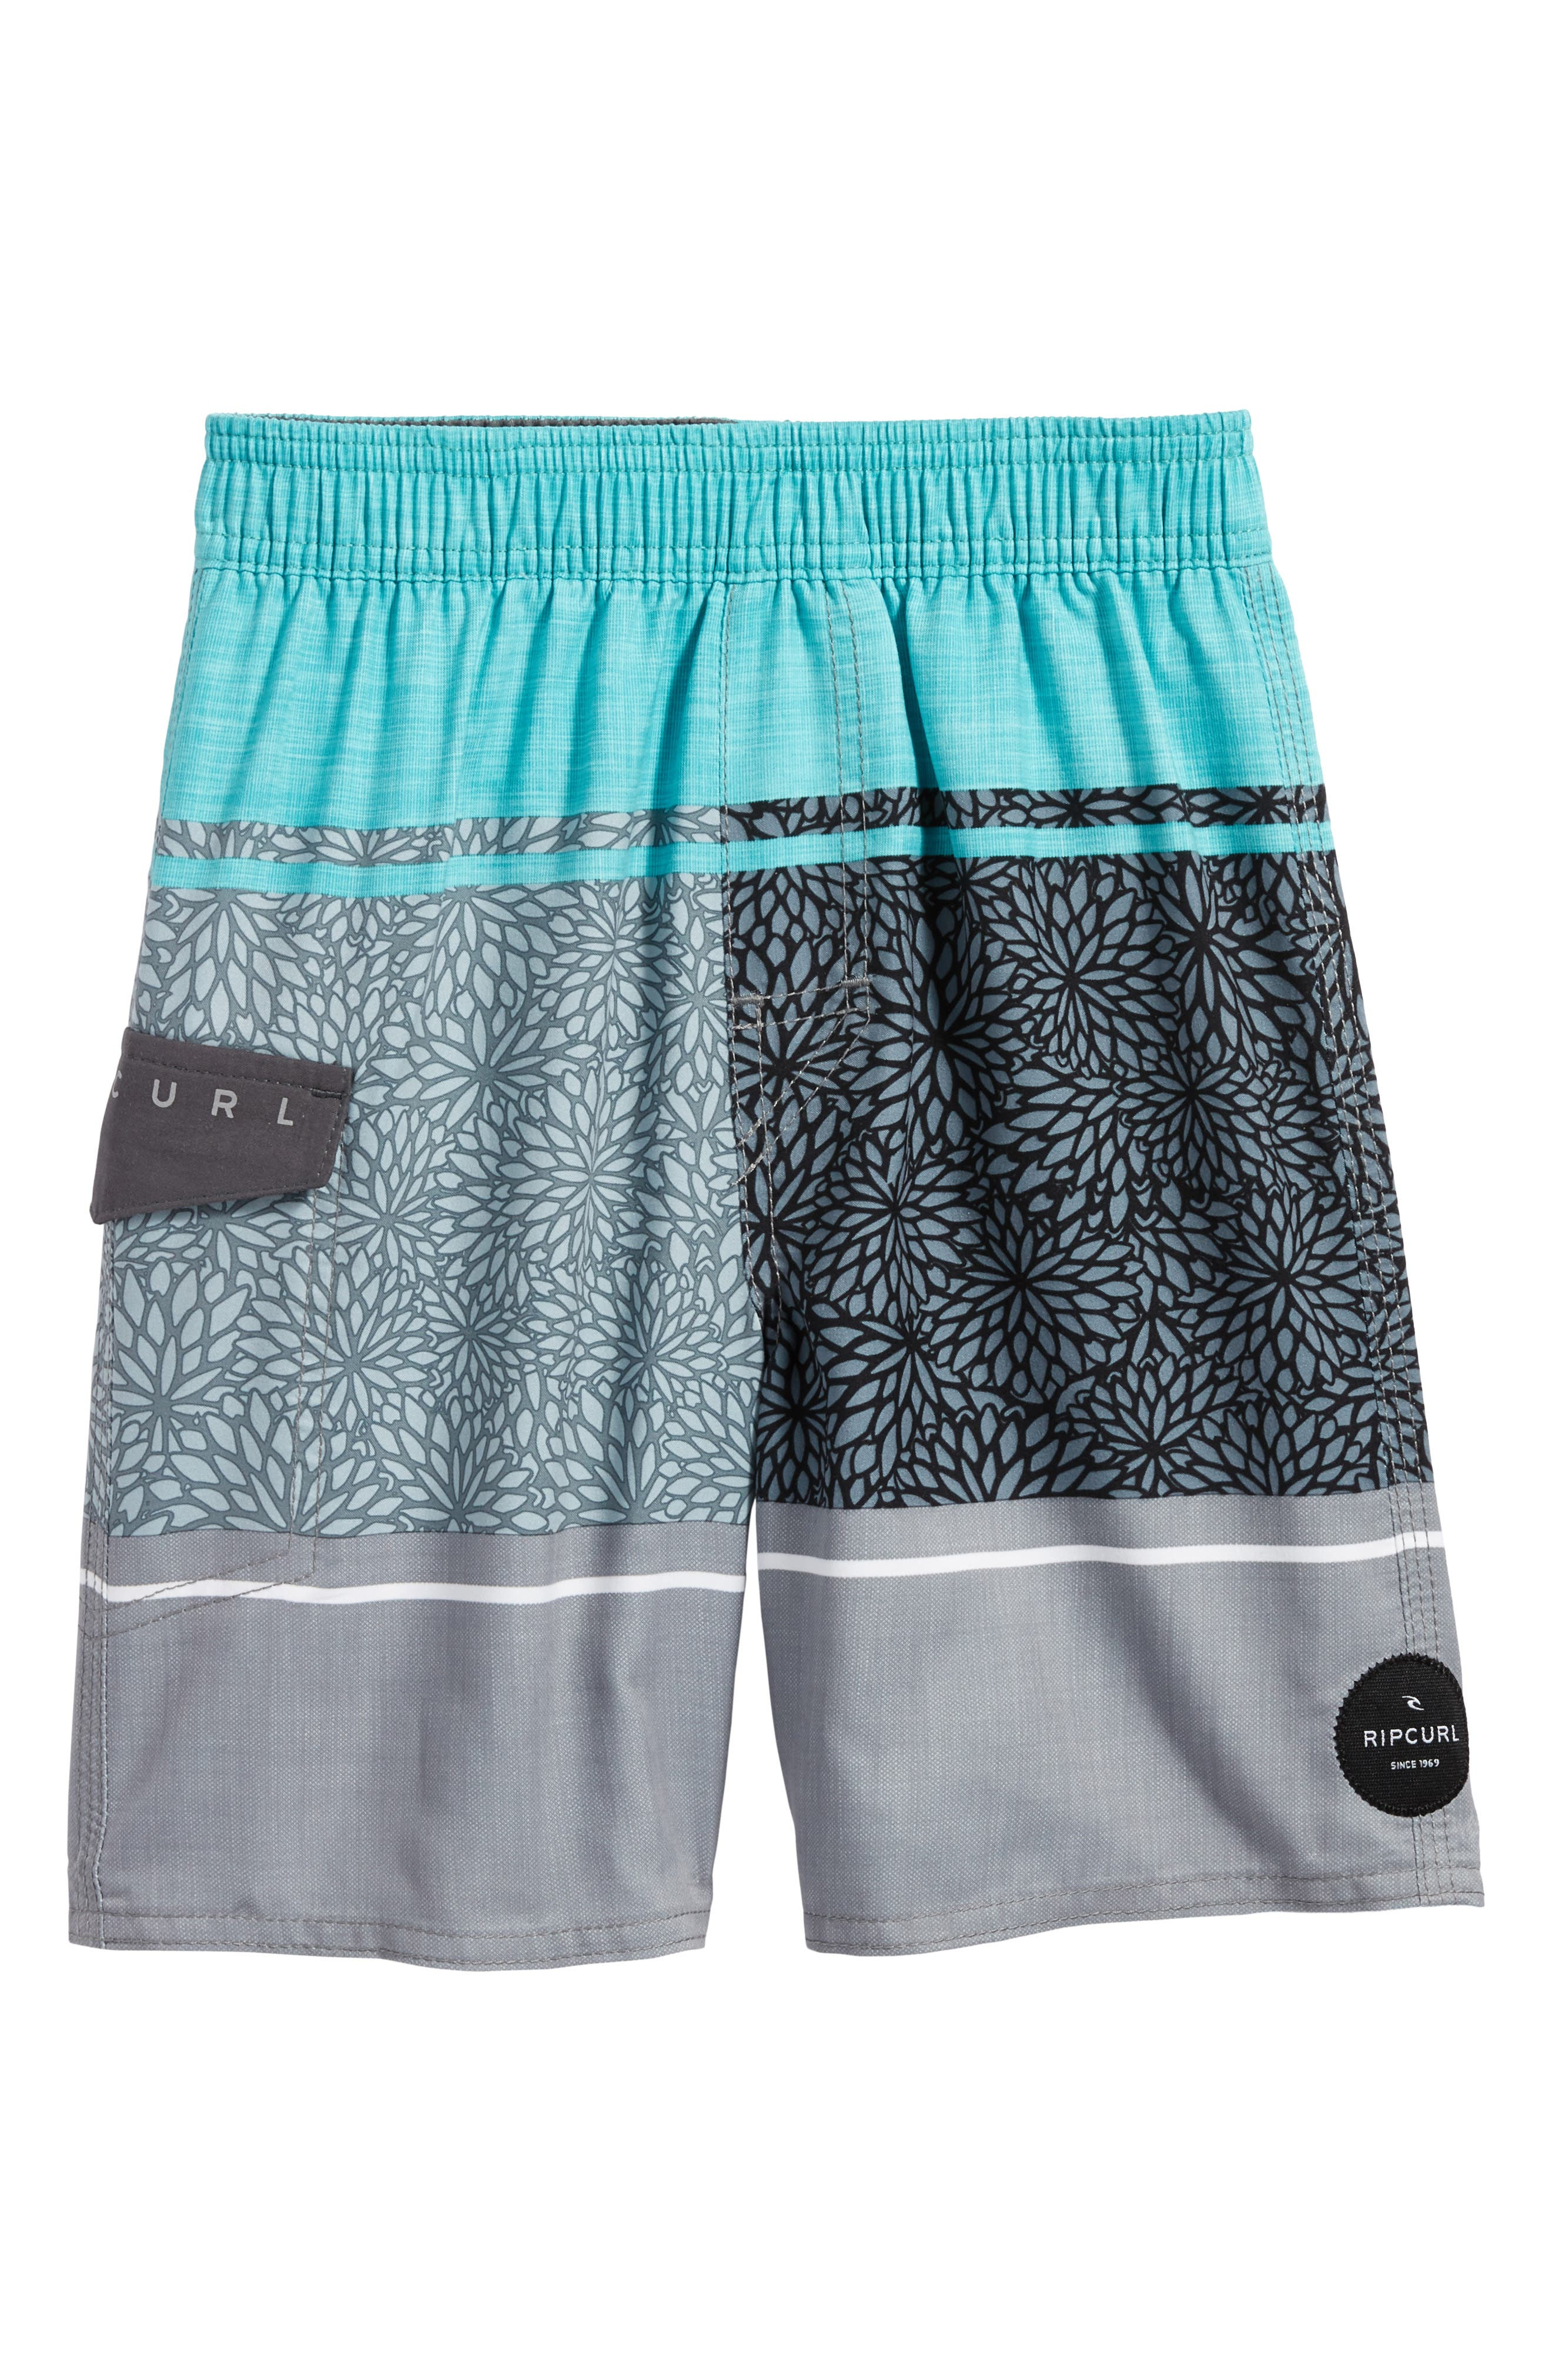 First Point Board Shorts,                         Main,                         color, 001